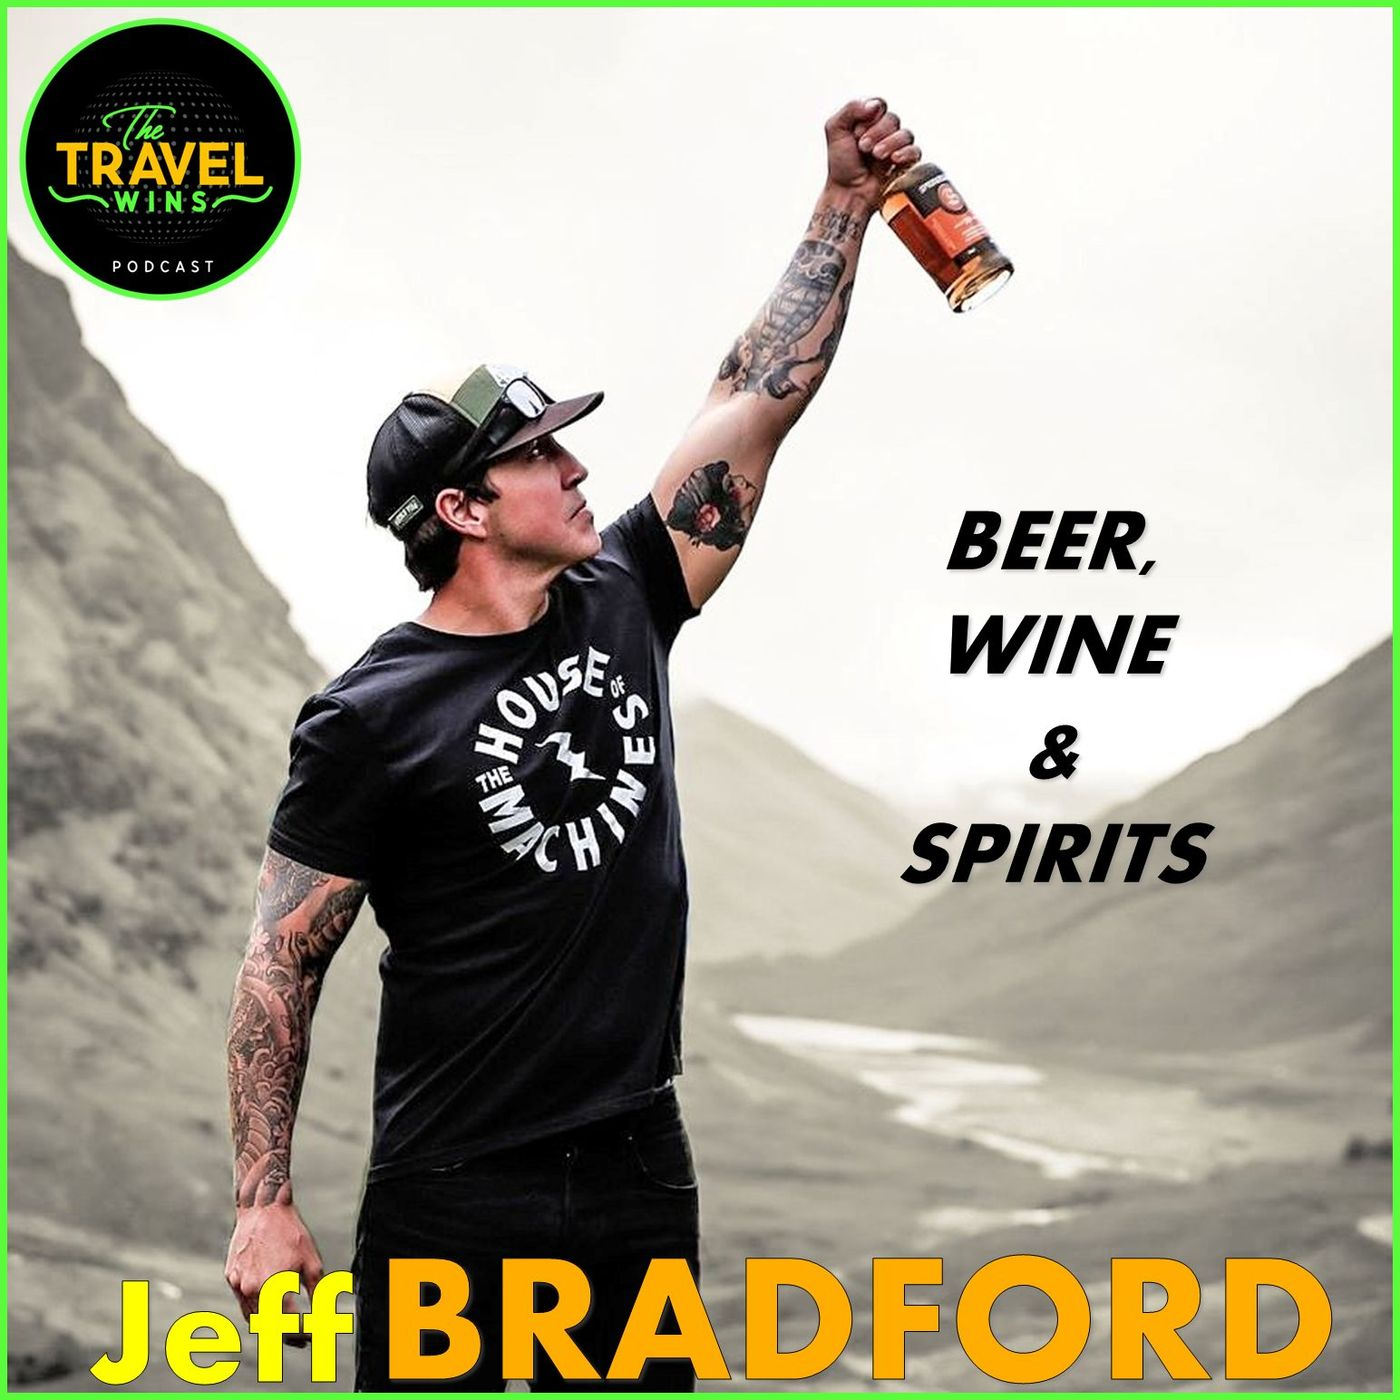 Jeff Bradford | Travel the World for a Drink